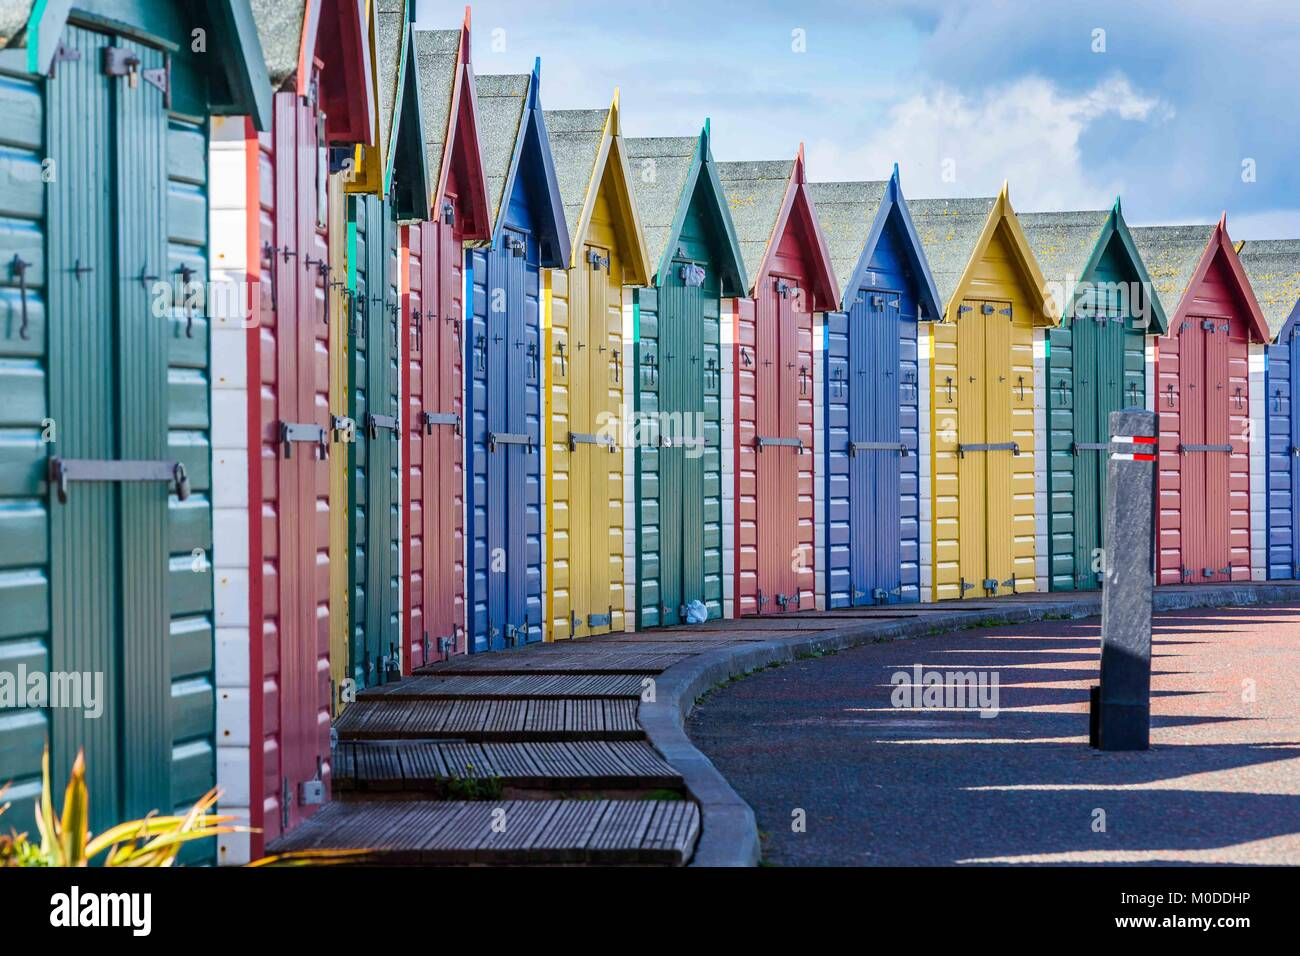 A row of Beach Huts or changing rooms at Dawlish Warren, Devon, UK - Stock Image